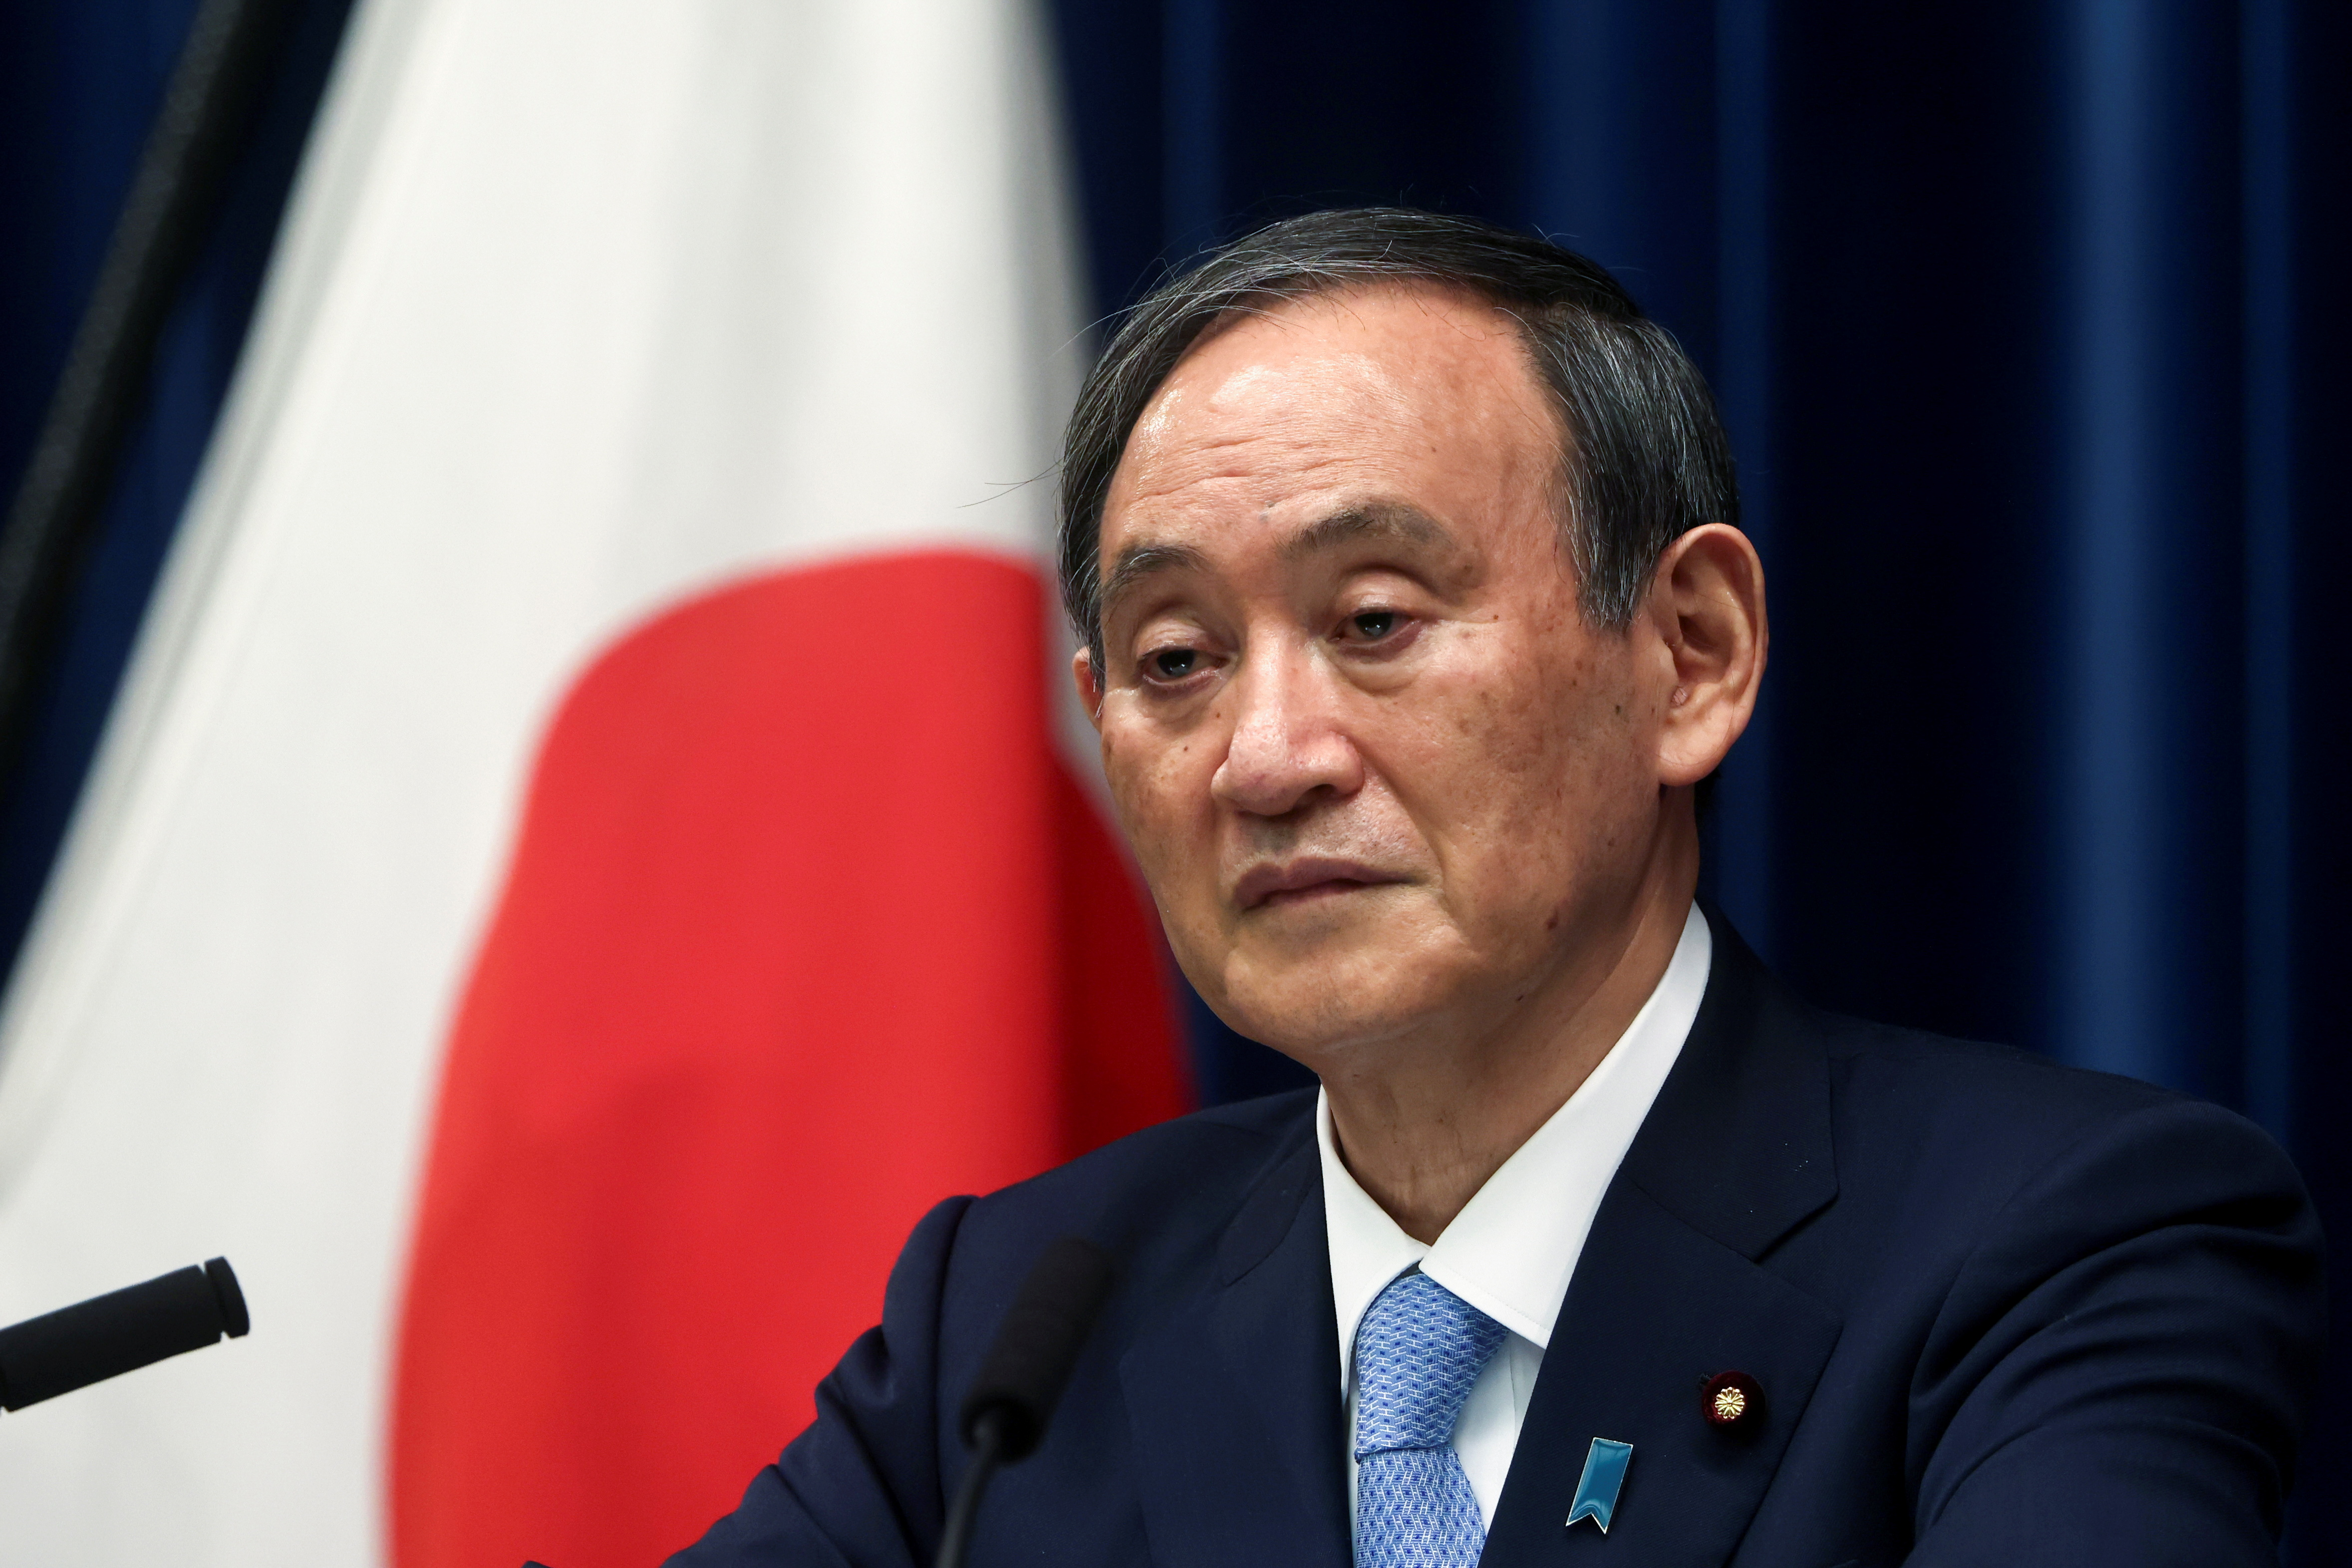 Japan's Prime Minister Yoshihide Suga speaks during a news conference after the government's decision to exted a state of emergency amid coronavirus disease (COVID-19) pandemic, at the prime minister's official residence in Tokyo, Japan May 28, 2021. Behrouz Mehri/Pool via REUTERS